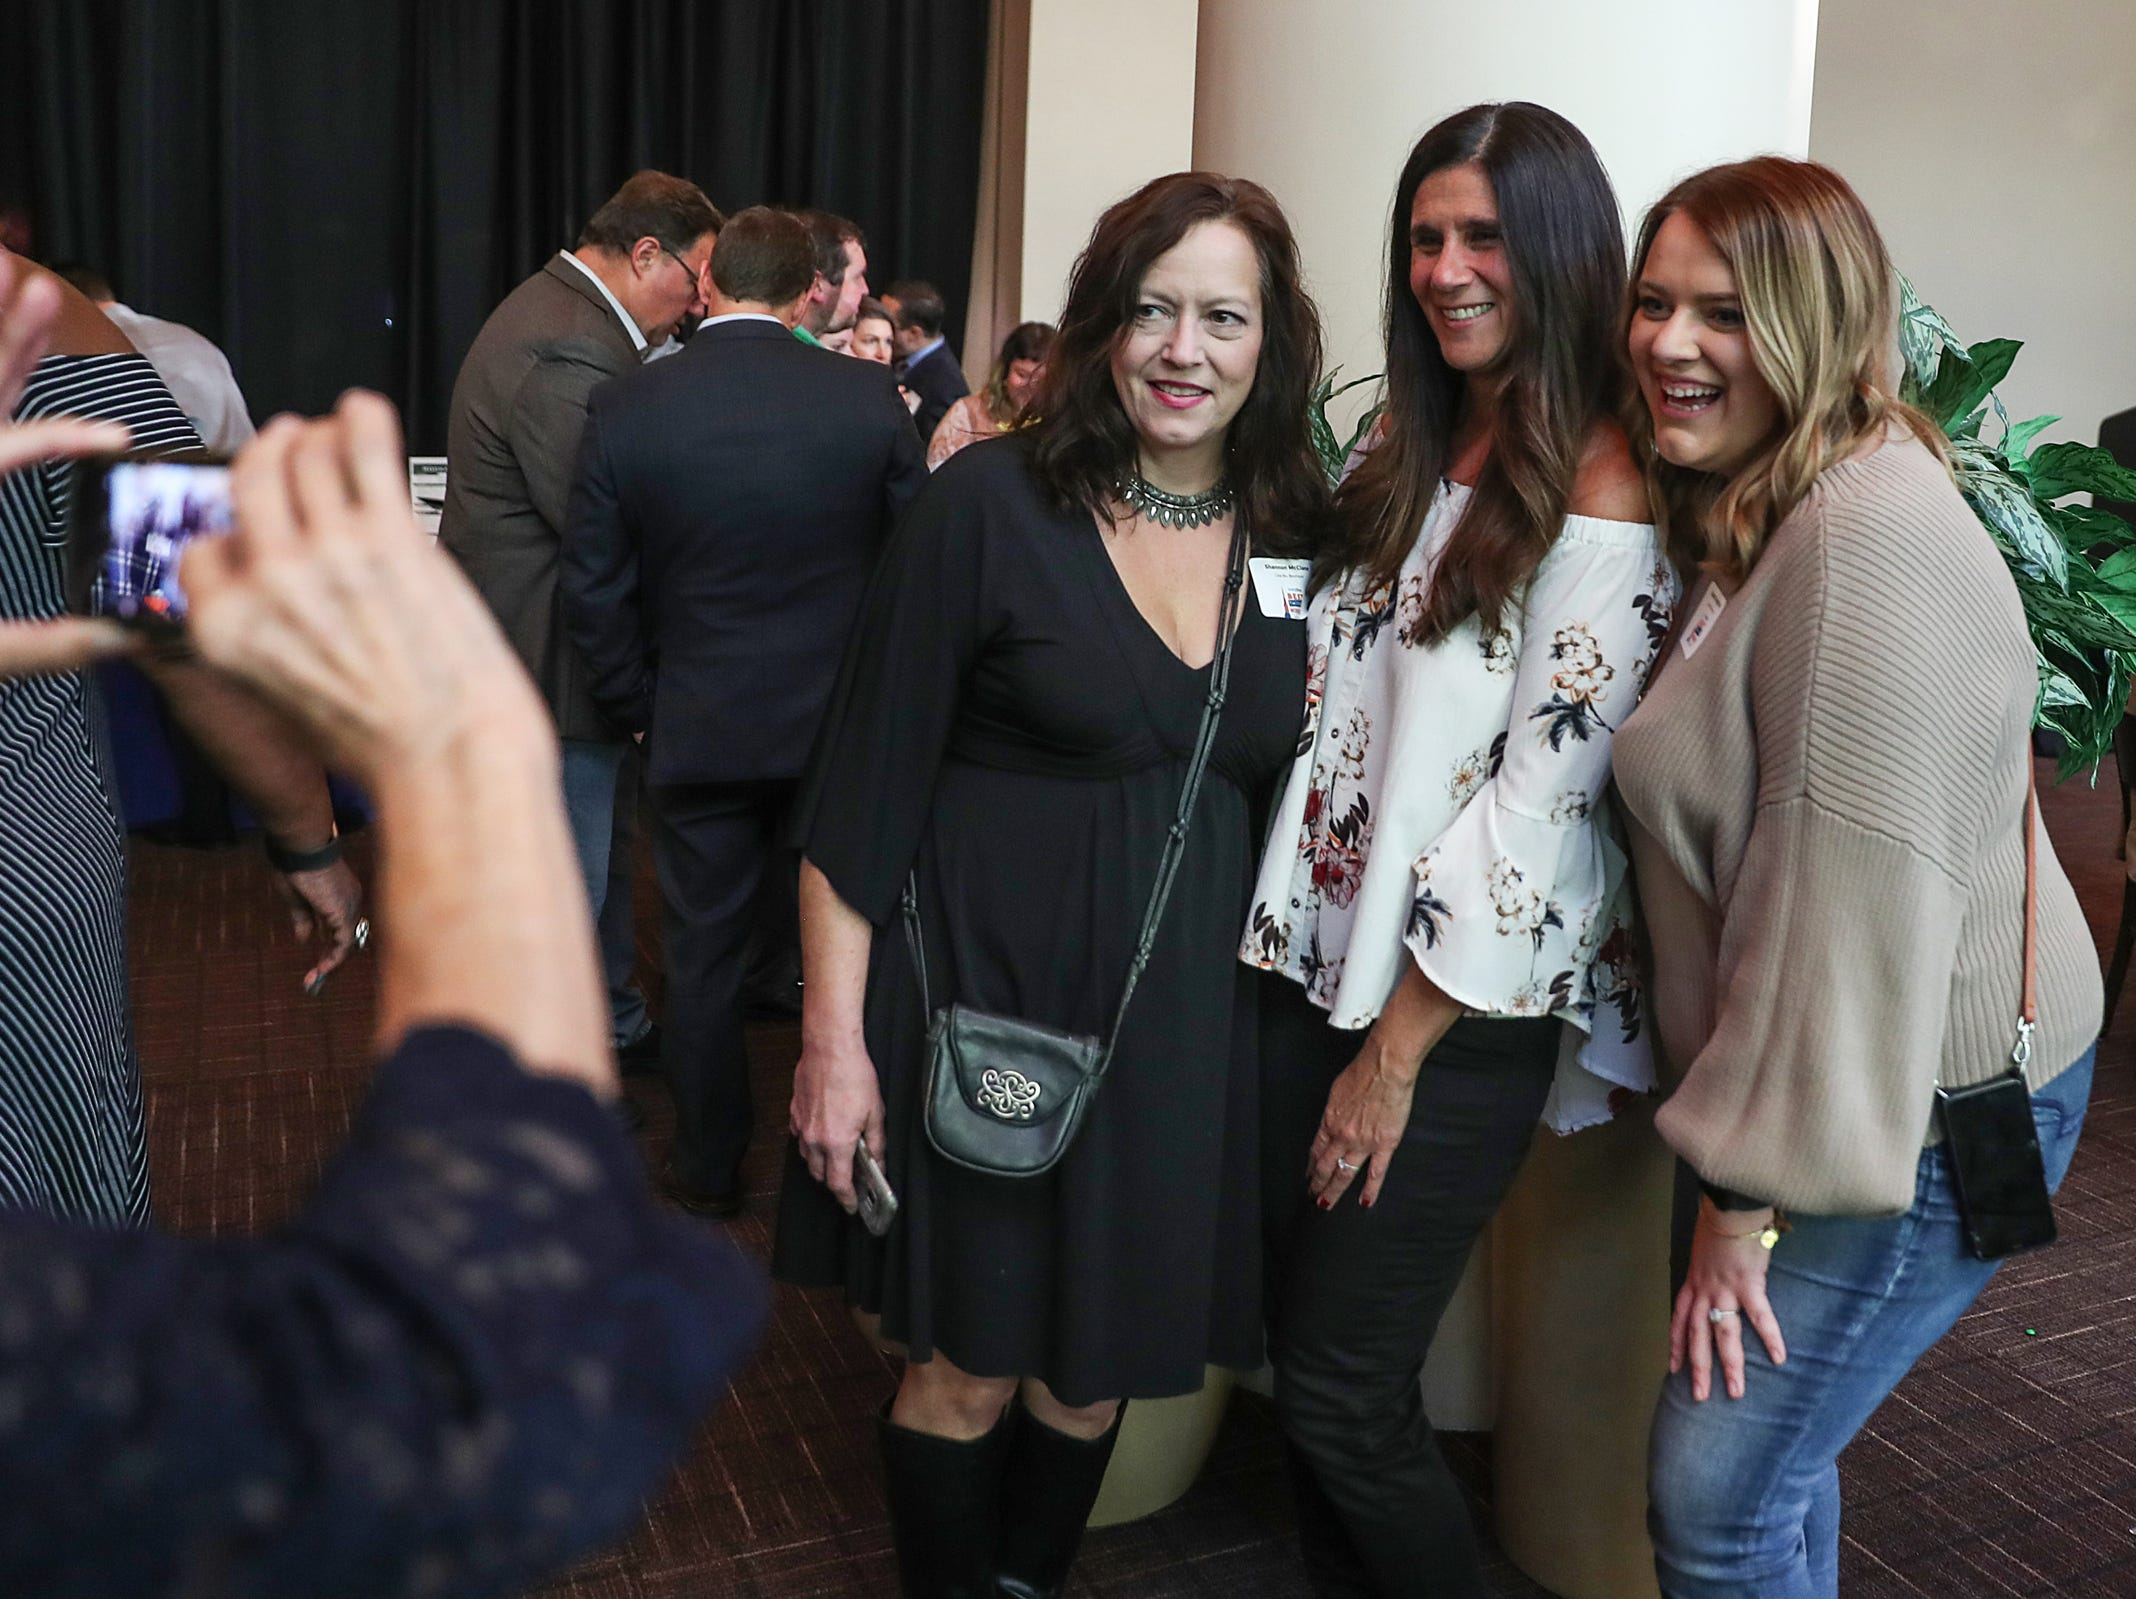 Pamela Moosey celebrates her win for Lola Blu Boutique with loved ones during the inaugural Best Things Indy 2018 award ceremony, held by IndyStar at One America Tower in Indianapolis, Thursday, Sept. 27, 2018.